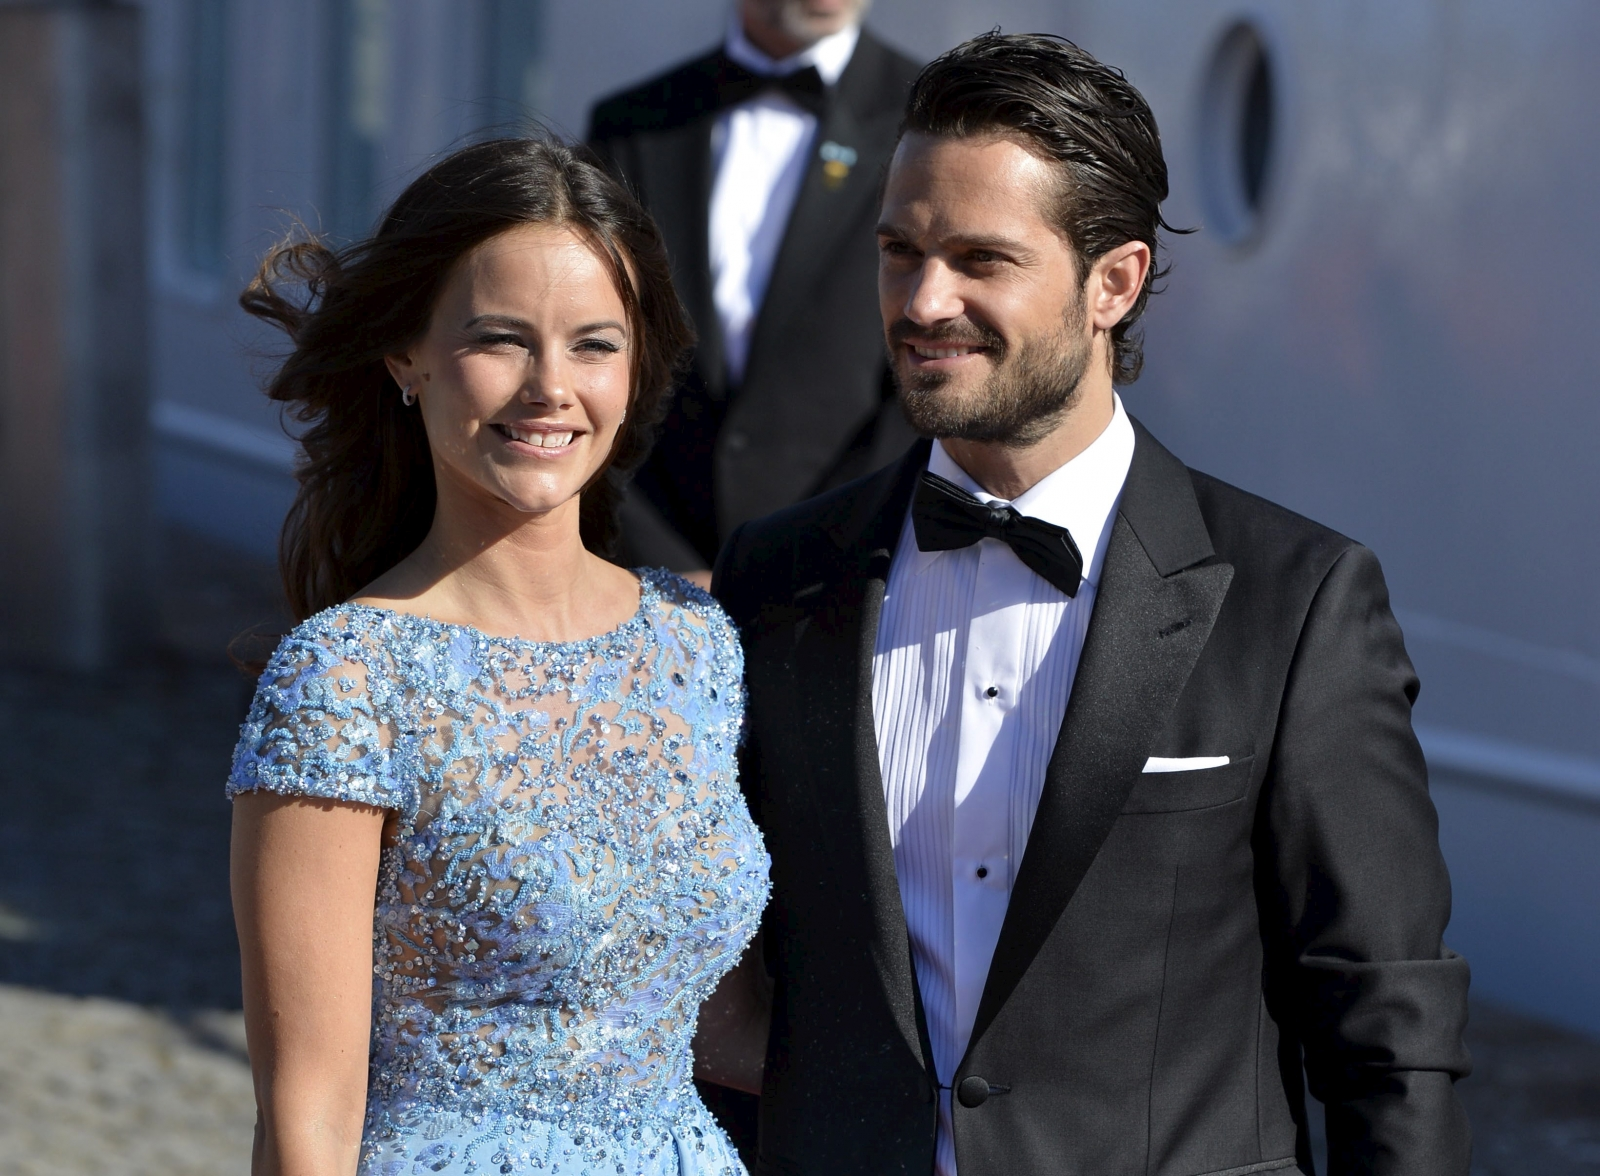 Swedish royal couple